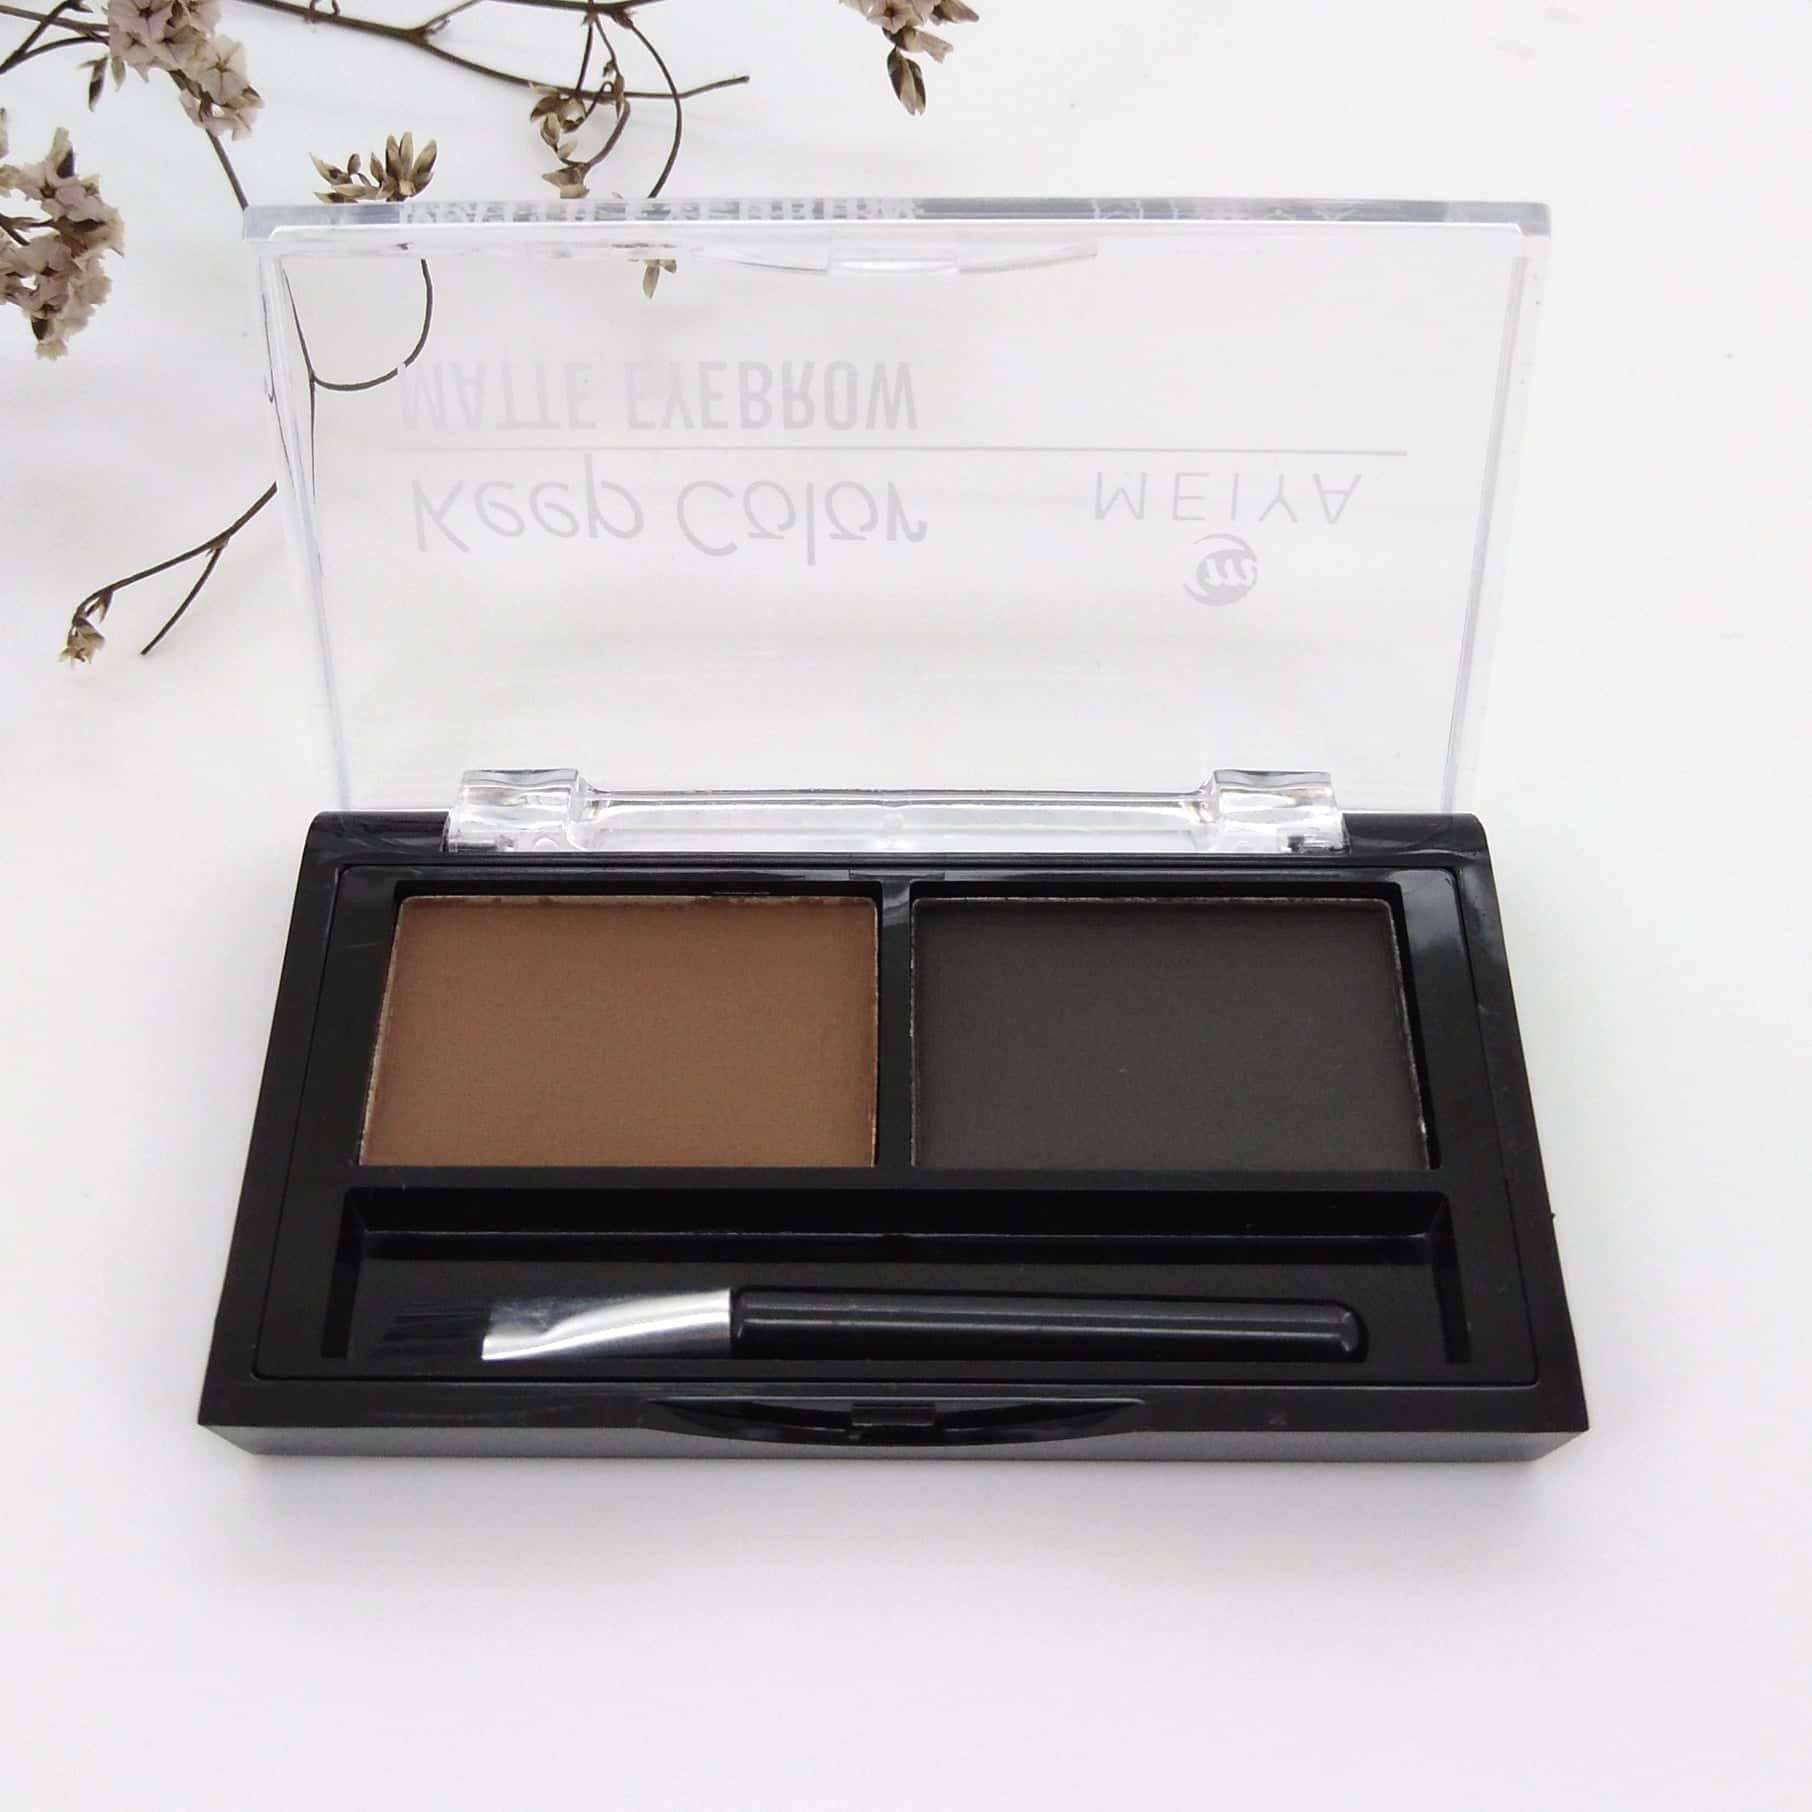 MEIYA Keep Color Matte Eyebrow Powder with Brush (ME-008) Philippines